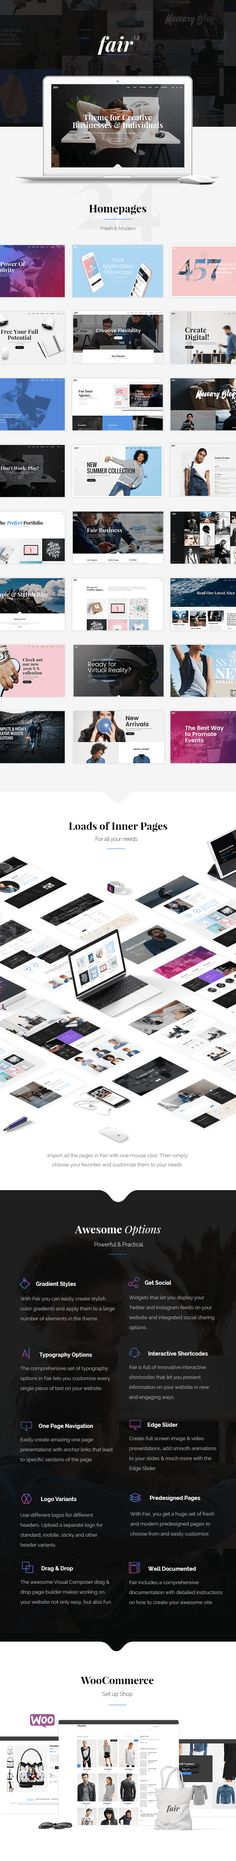 Fair - A Fresh Multipurpose Theme for Creative Businesses & Individuals by…